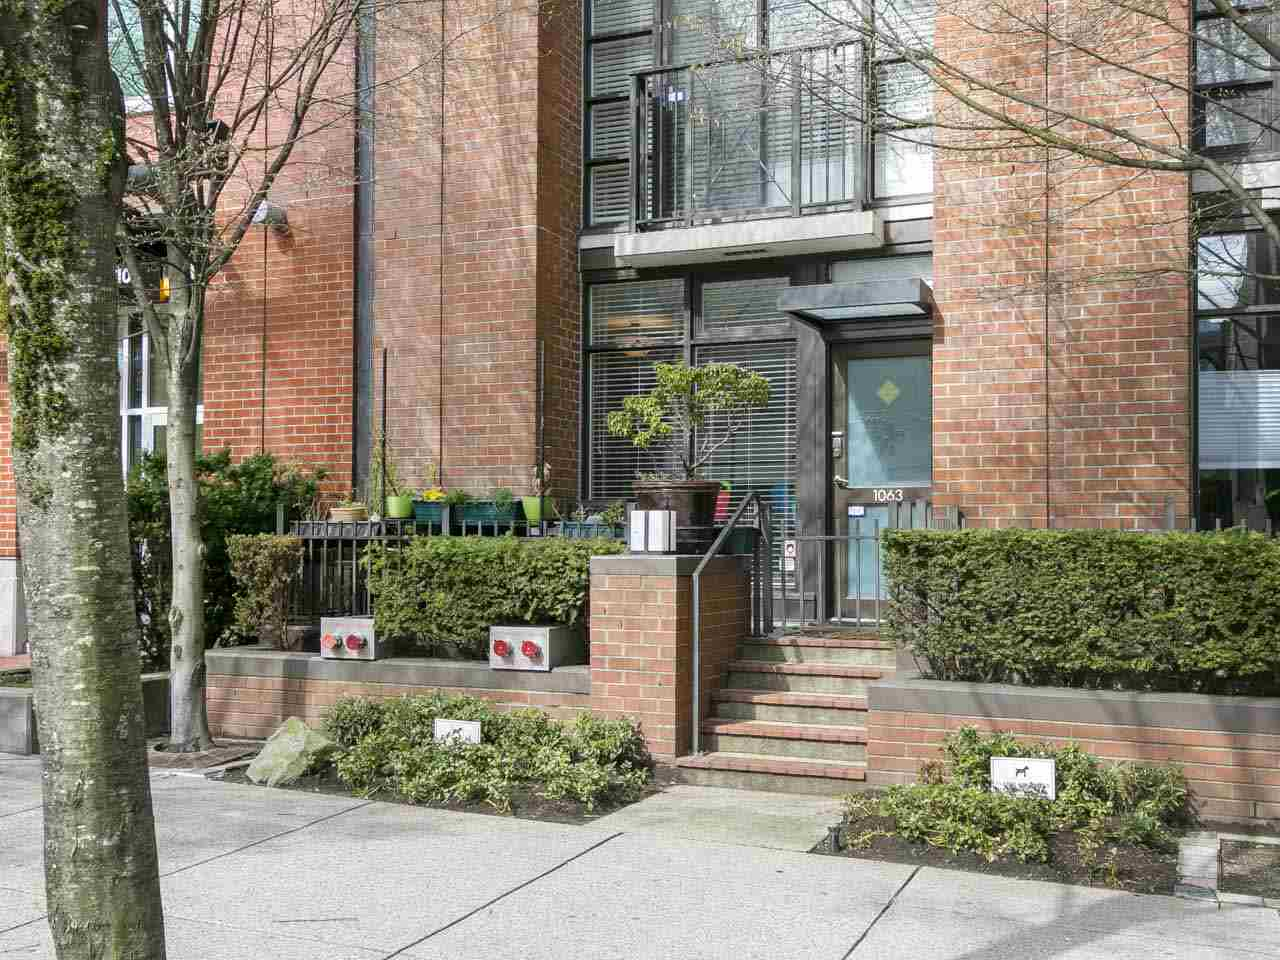 Stunning first-ever-on-market townhome at popular Domus in Yaletown! This 2bed/2bath home offers 1,134 square feet of open concept living over 2 floors. Walk into your spacious living area with warm hardwood flooring and floor to ceiling windows that allow for tons of lights. The gourmet kitchen with adjacent pantry is perfect for functional everyday use with family & friends. The second level offers two large bedrooms, both with ensuites and the master with private deck ideal to relax or entertain. An office or flex space is also located on this level. Buy with confidence in this meticulous maintained concrete building with hotel like amenities incl. gym, sauna & party room. Nestled in the heart of Yaletown residents are only mere steps from restaurant, shopping, the seawall and transit.